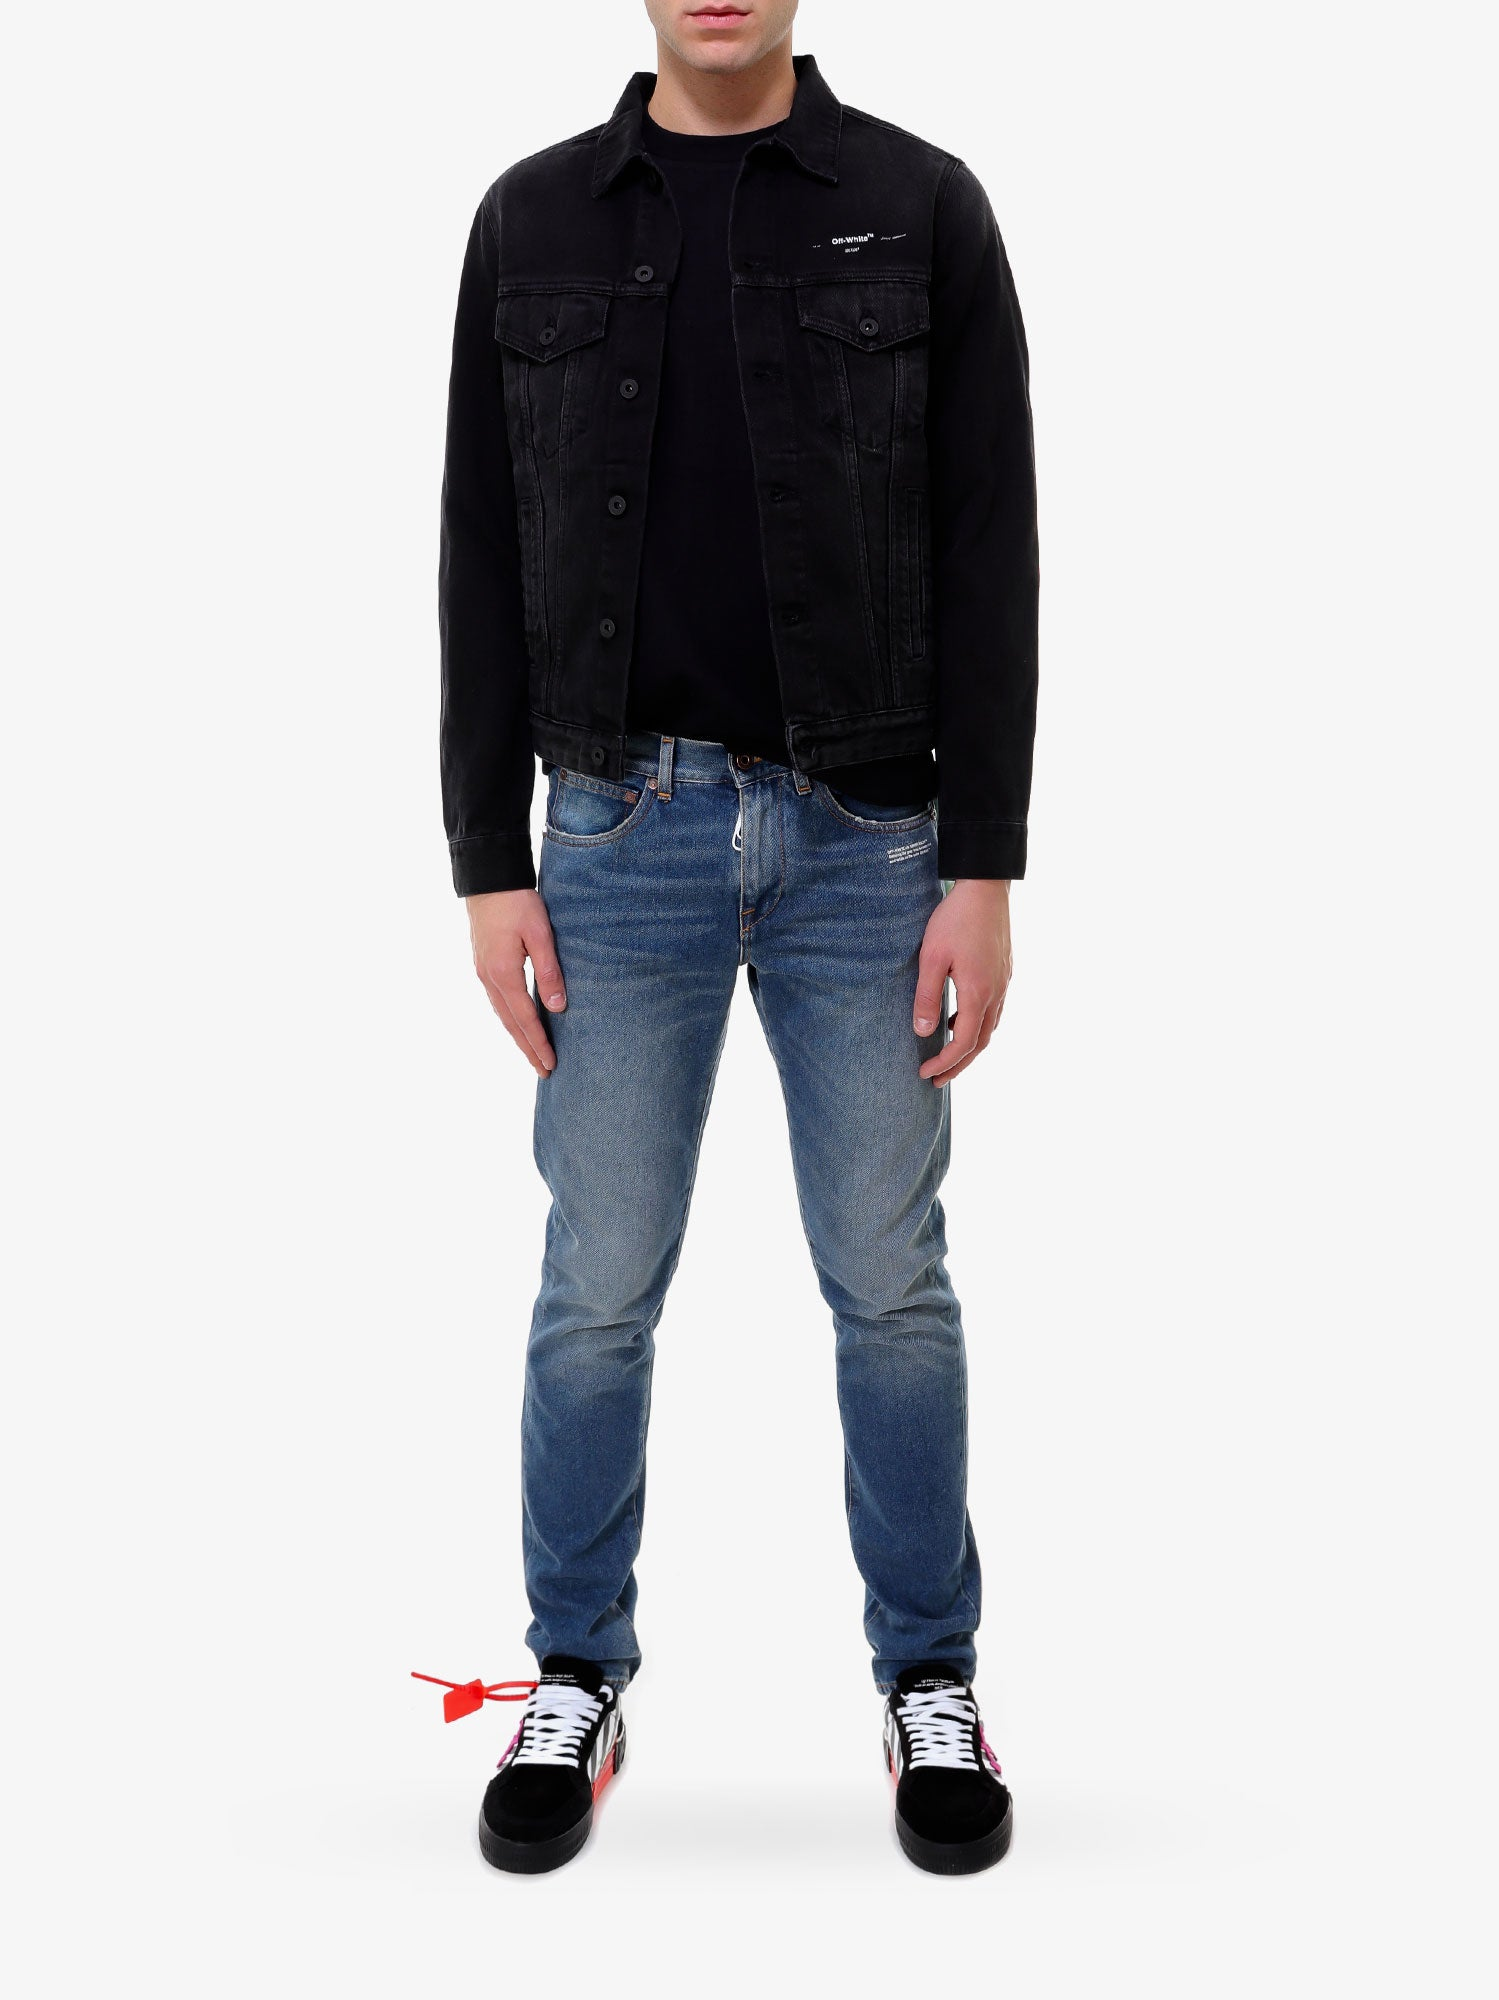 TAPE ARROWS SLIM JEANS JACKET